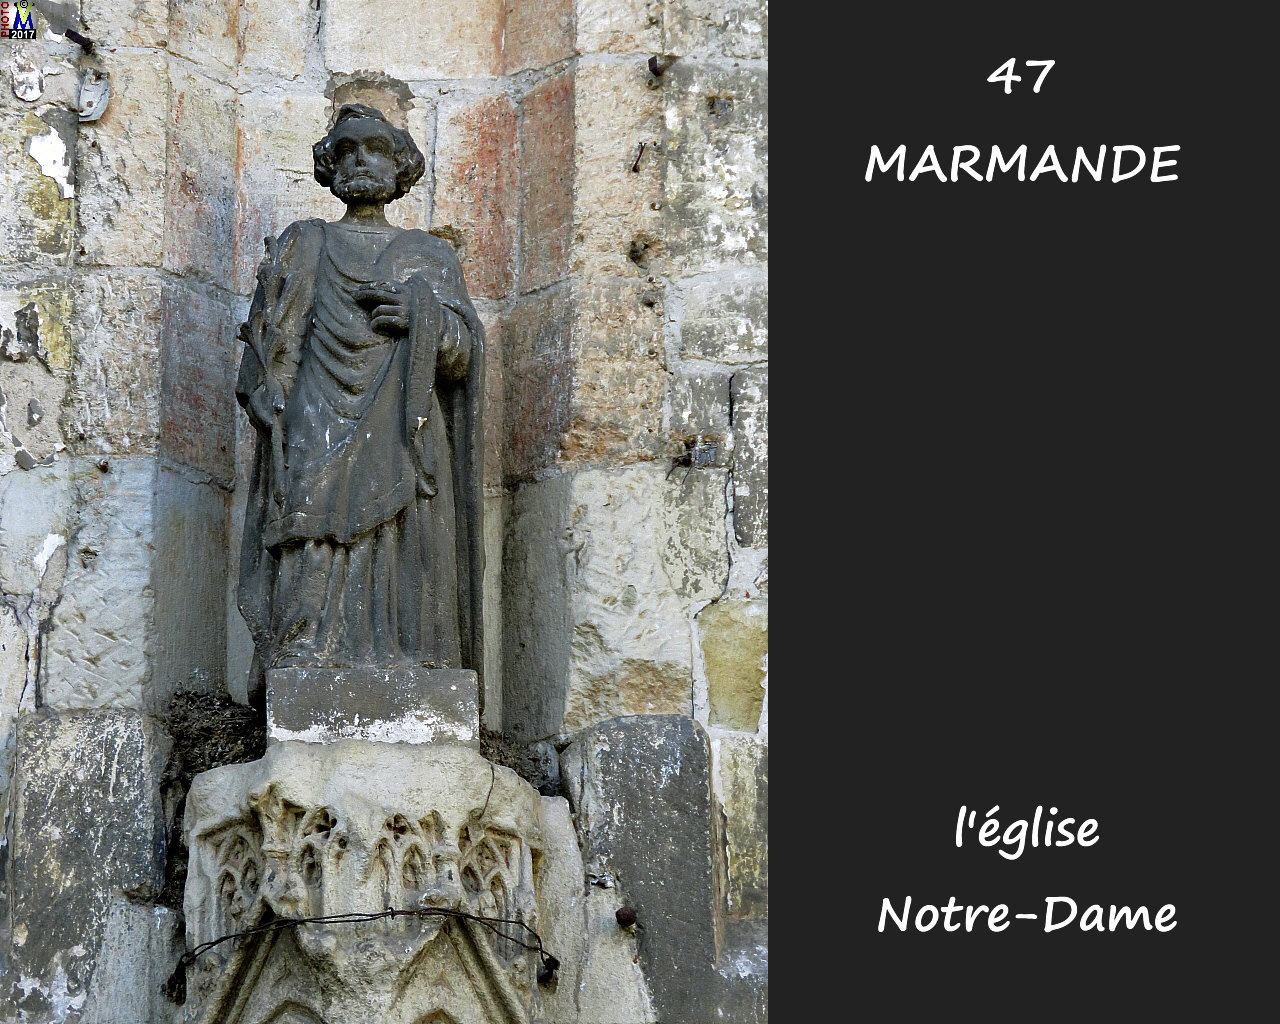 47MARMANDE_eglise_1030.jpg